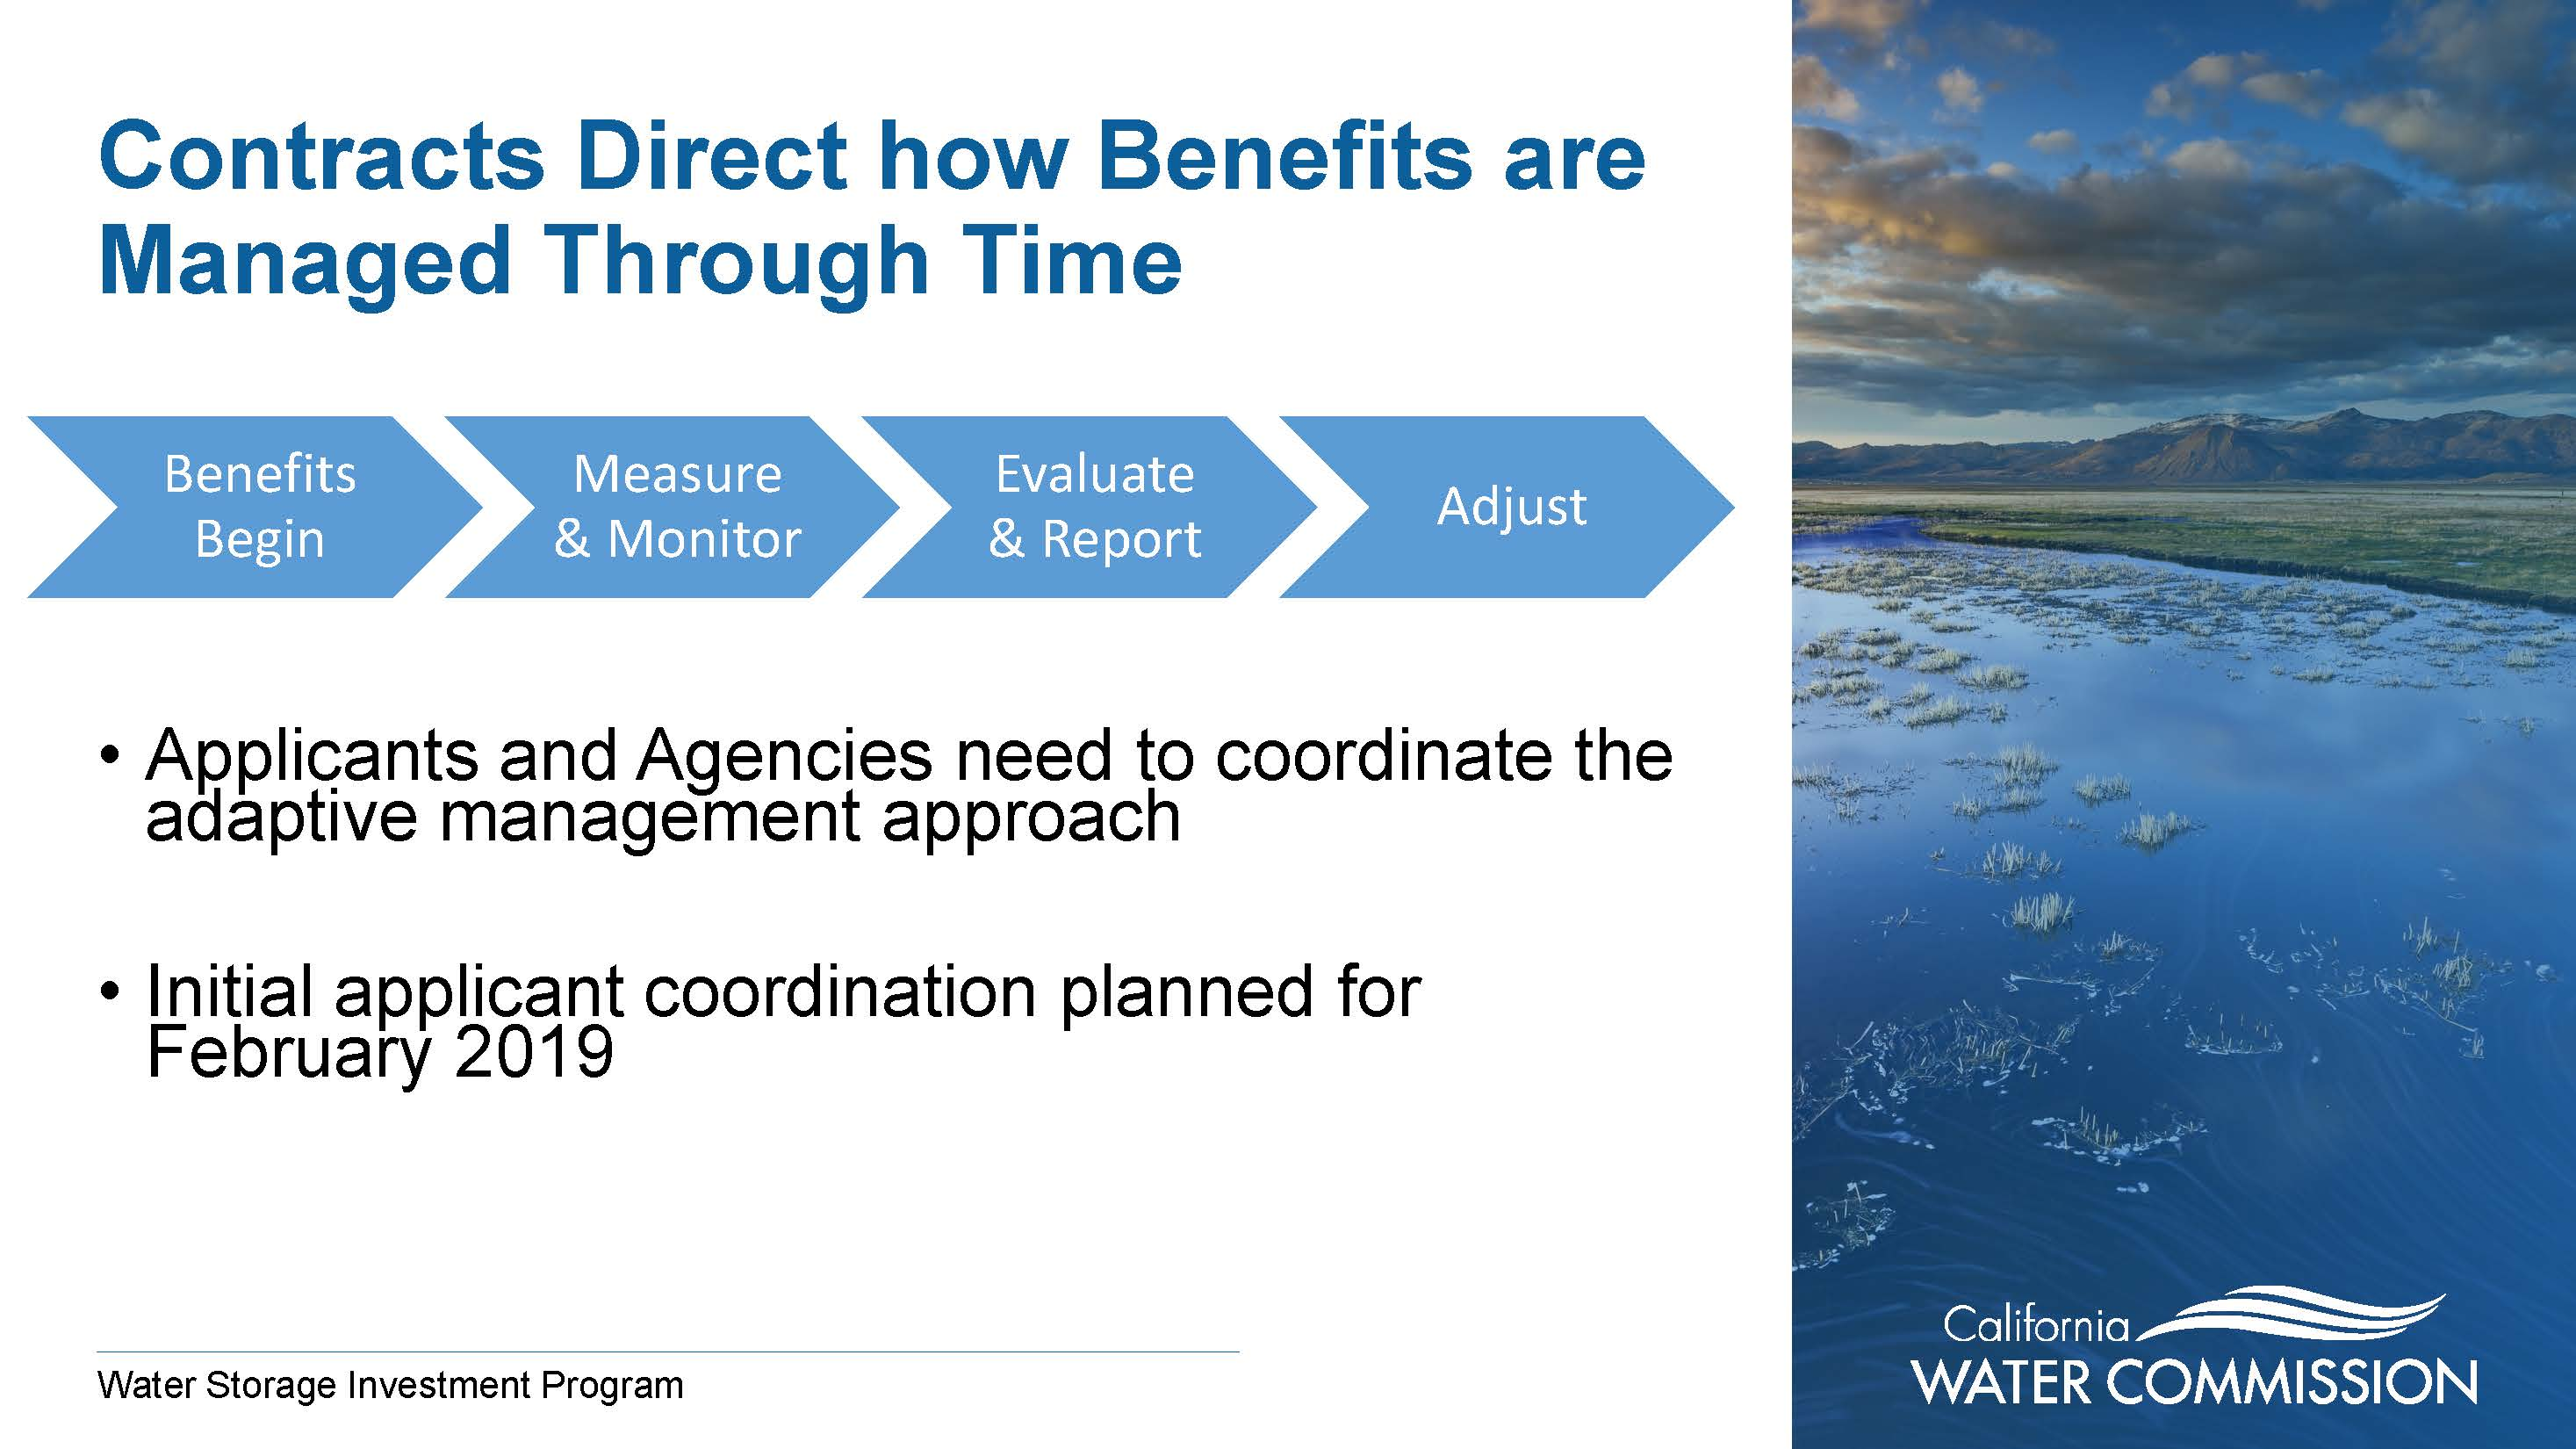 CA WATER COMMISSION: Overview of Water Use Efficiency